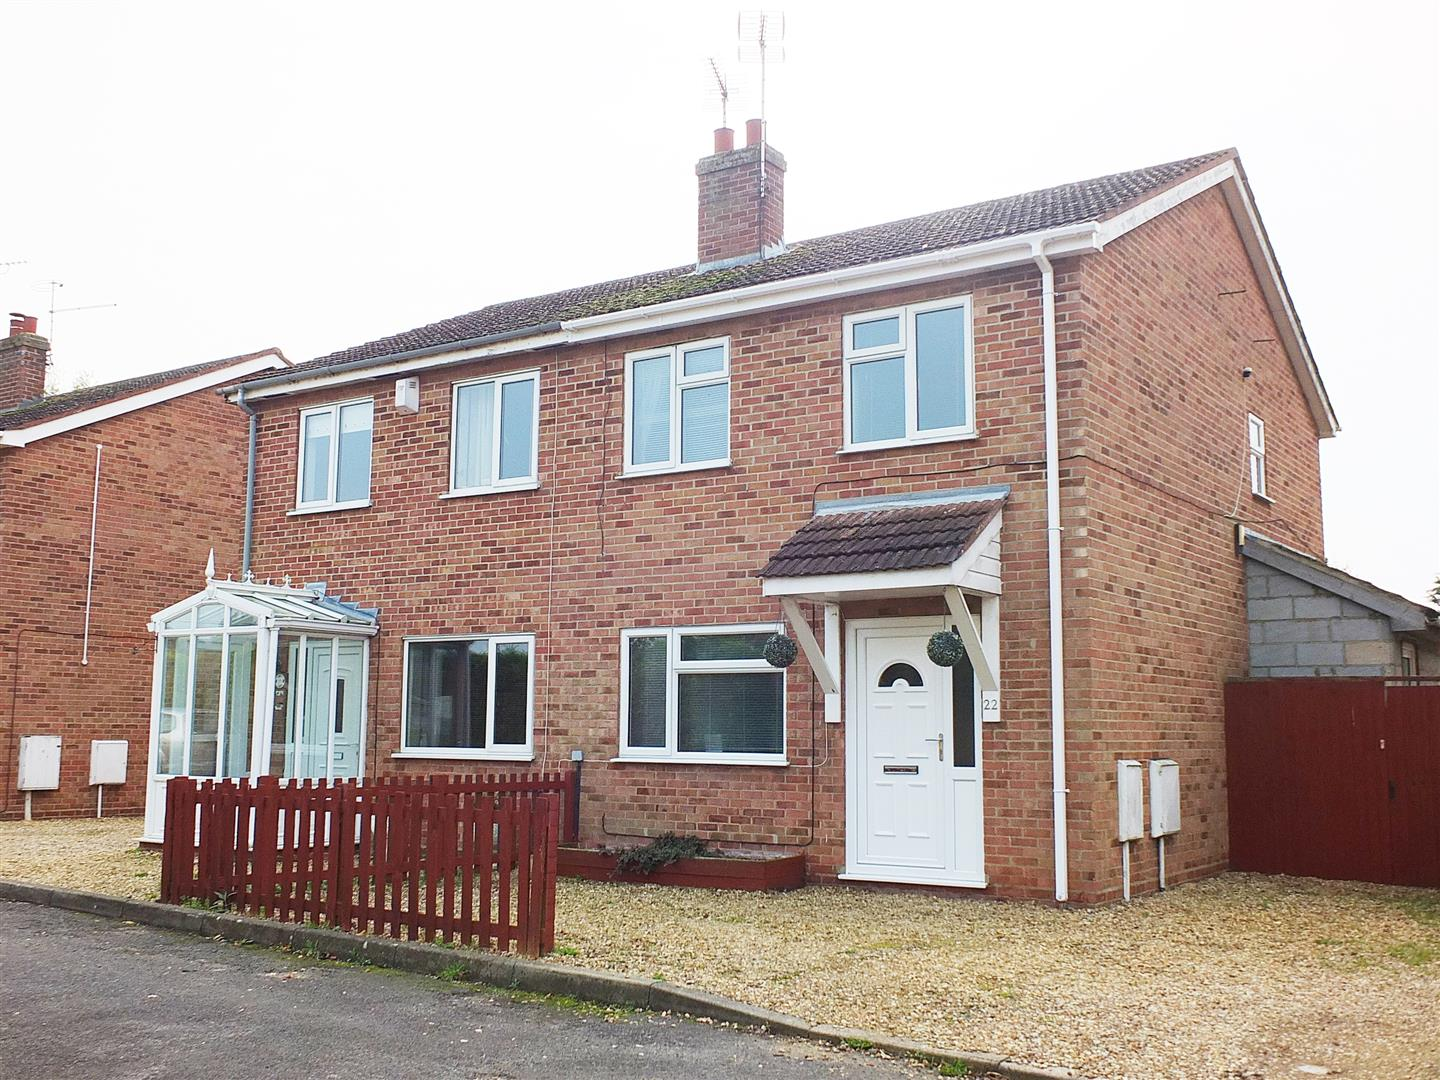 3 bed semi-detached house for sale in Sutton Bridge Spalding, PE12 9TY, PE12